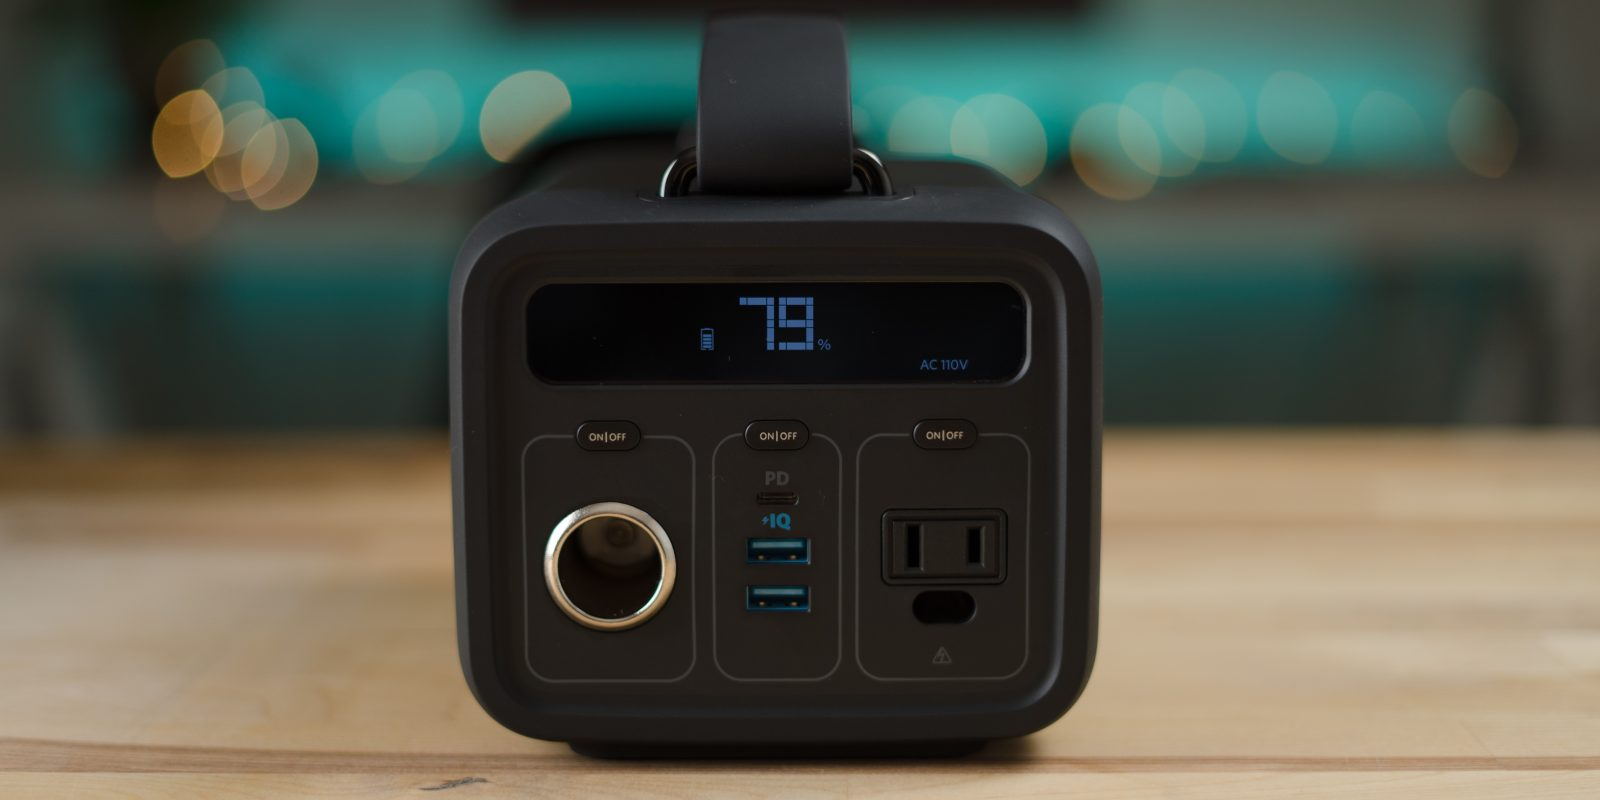 Anker PowerHouse 200 Review: Big power in a small portable generator [Video]